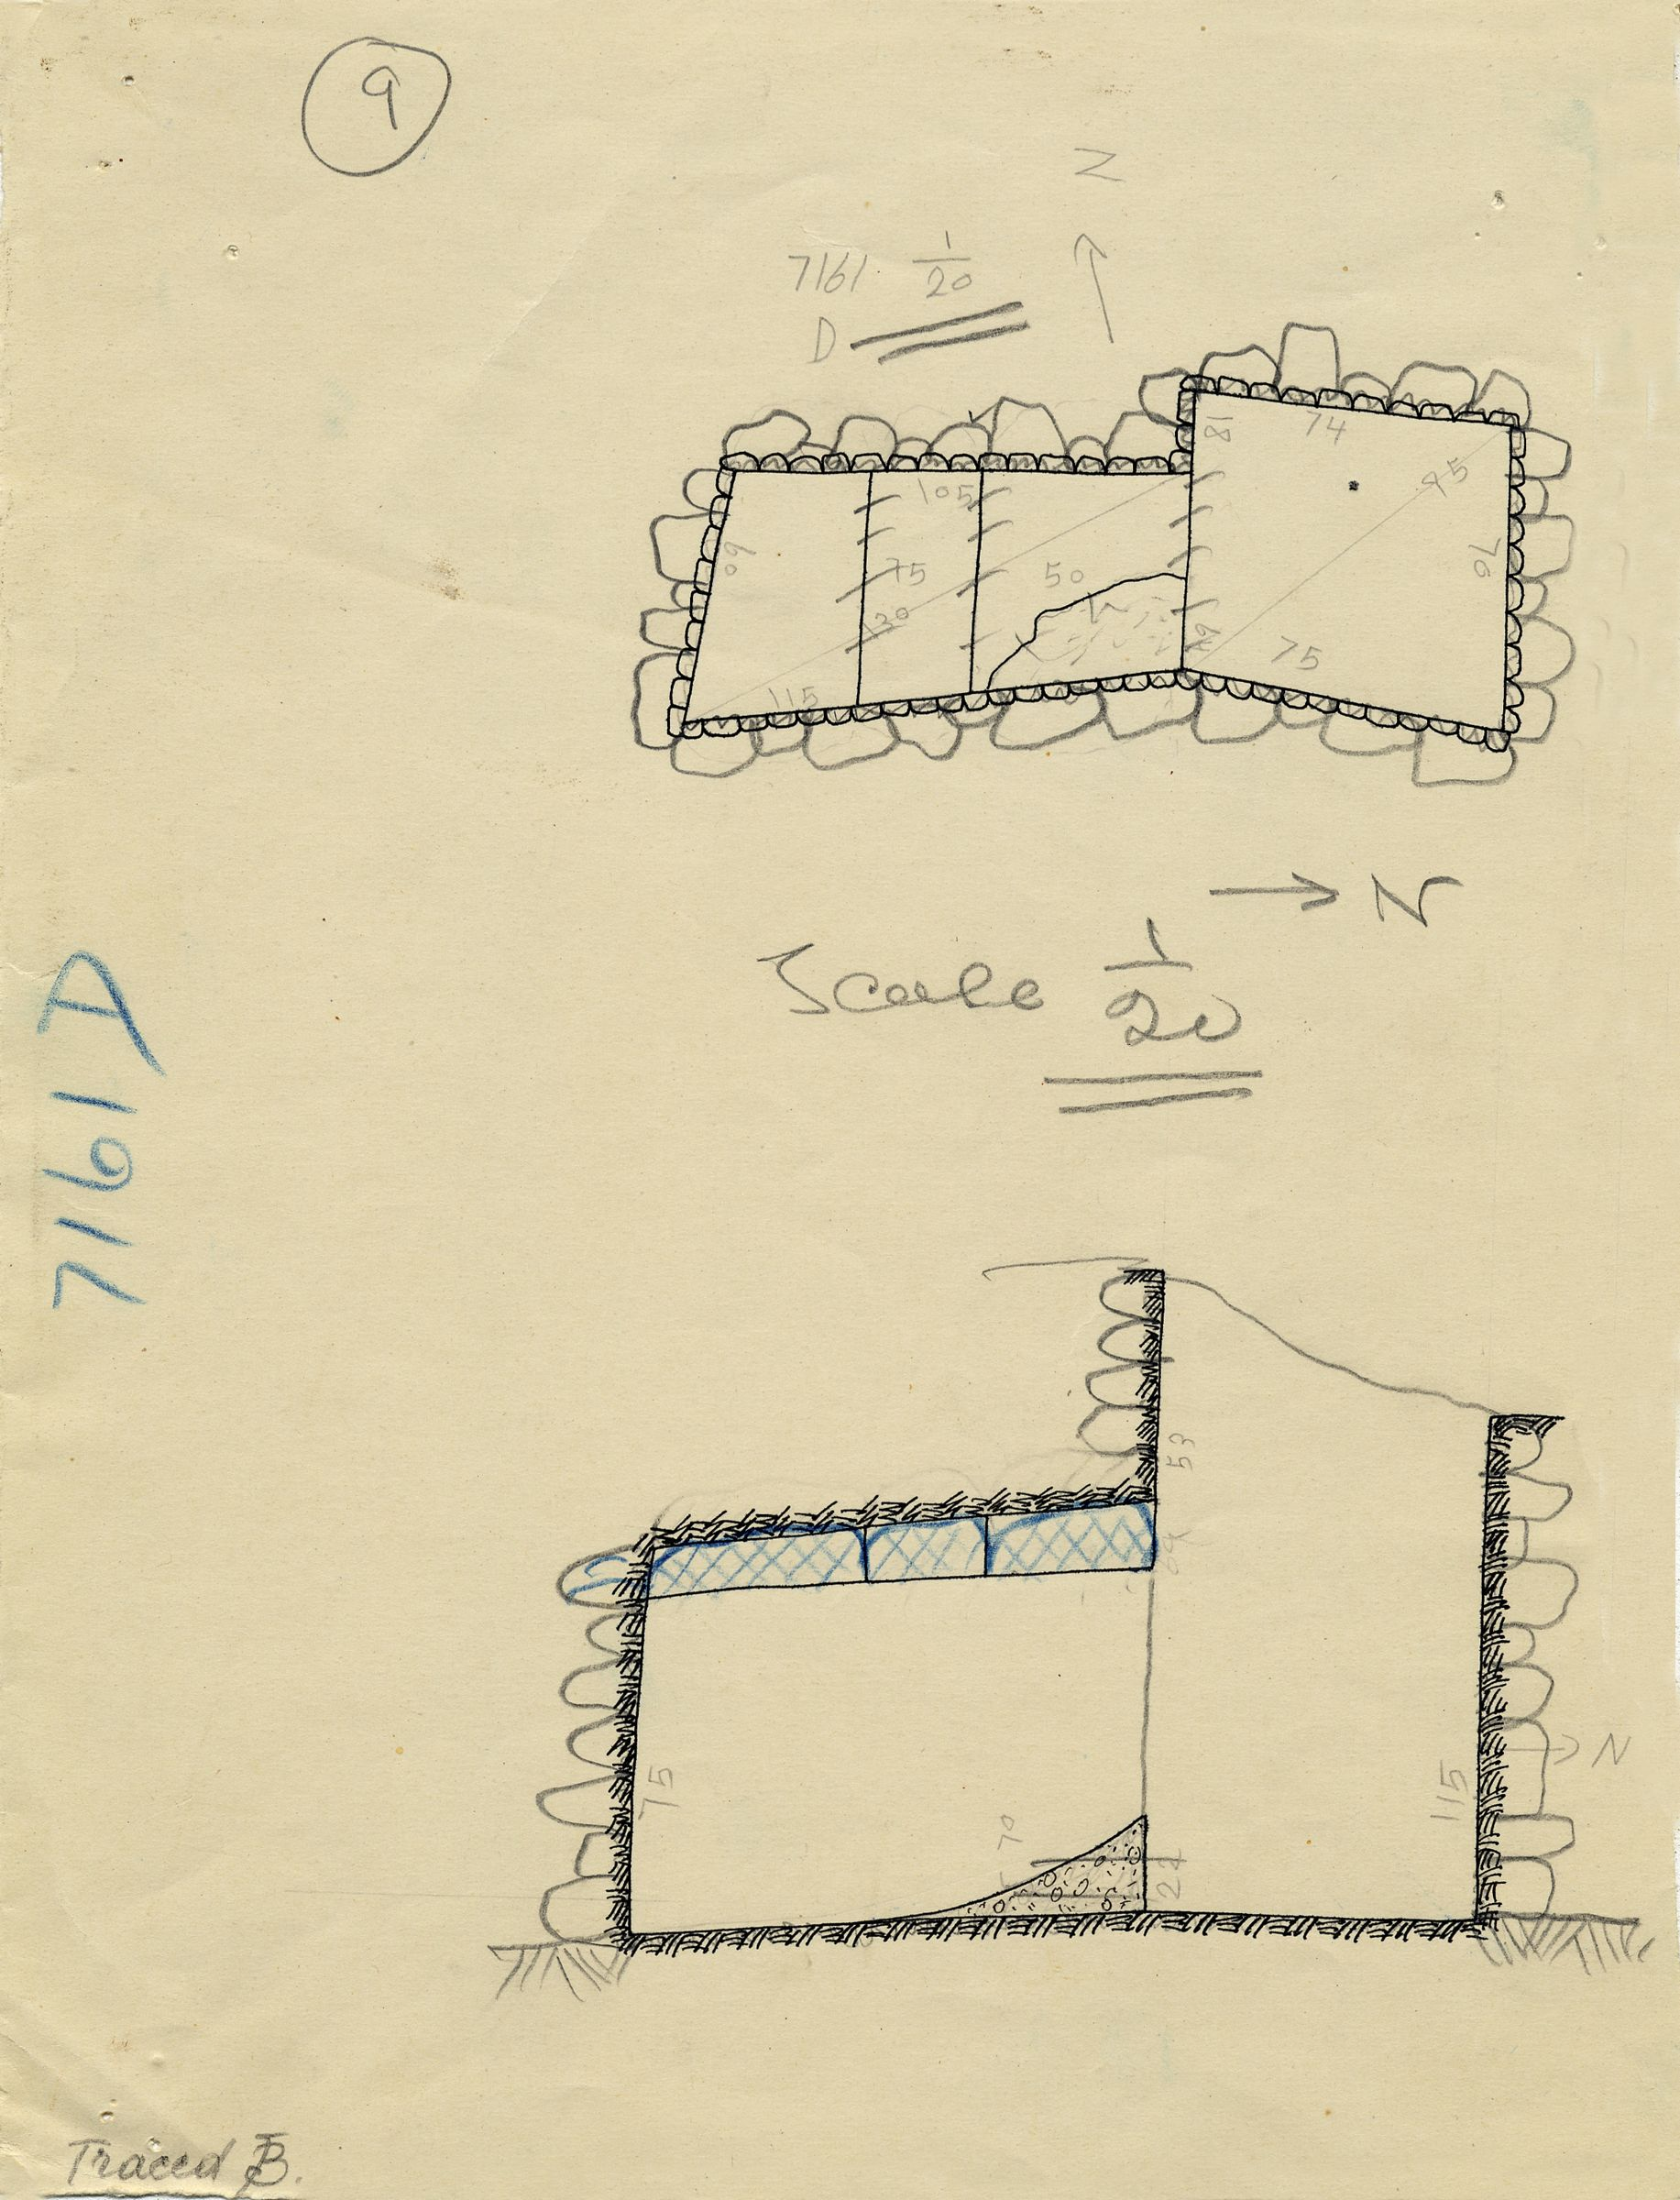 Maps and plans: G 7161, Shaft D